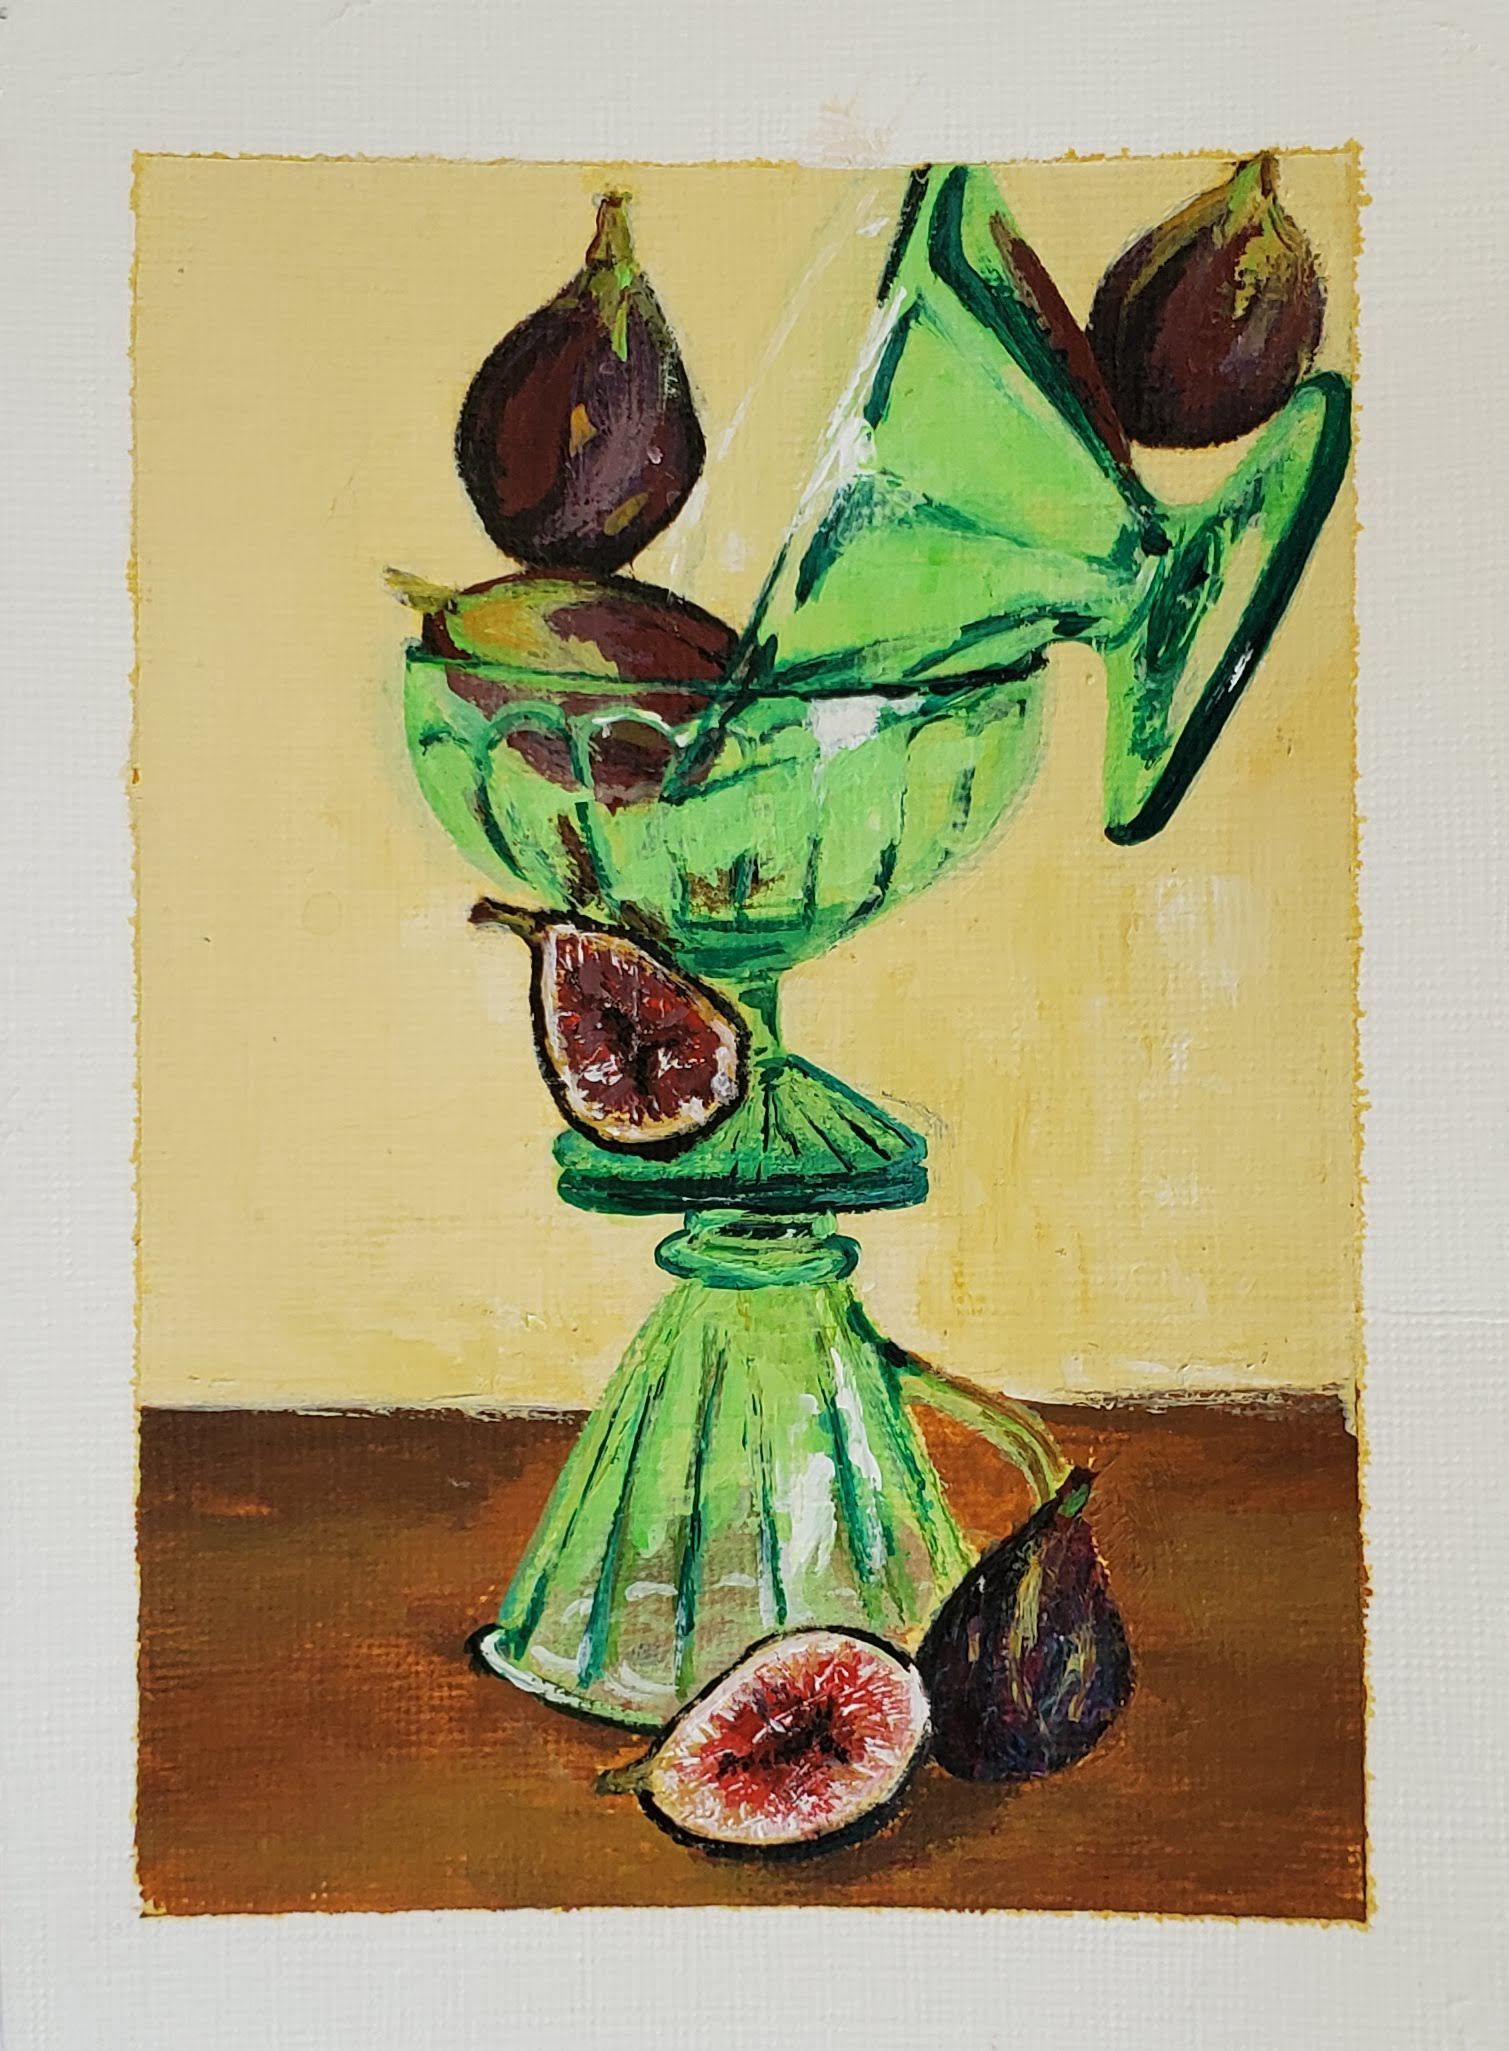 still life of balancing green glasses with some figs.